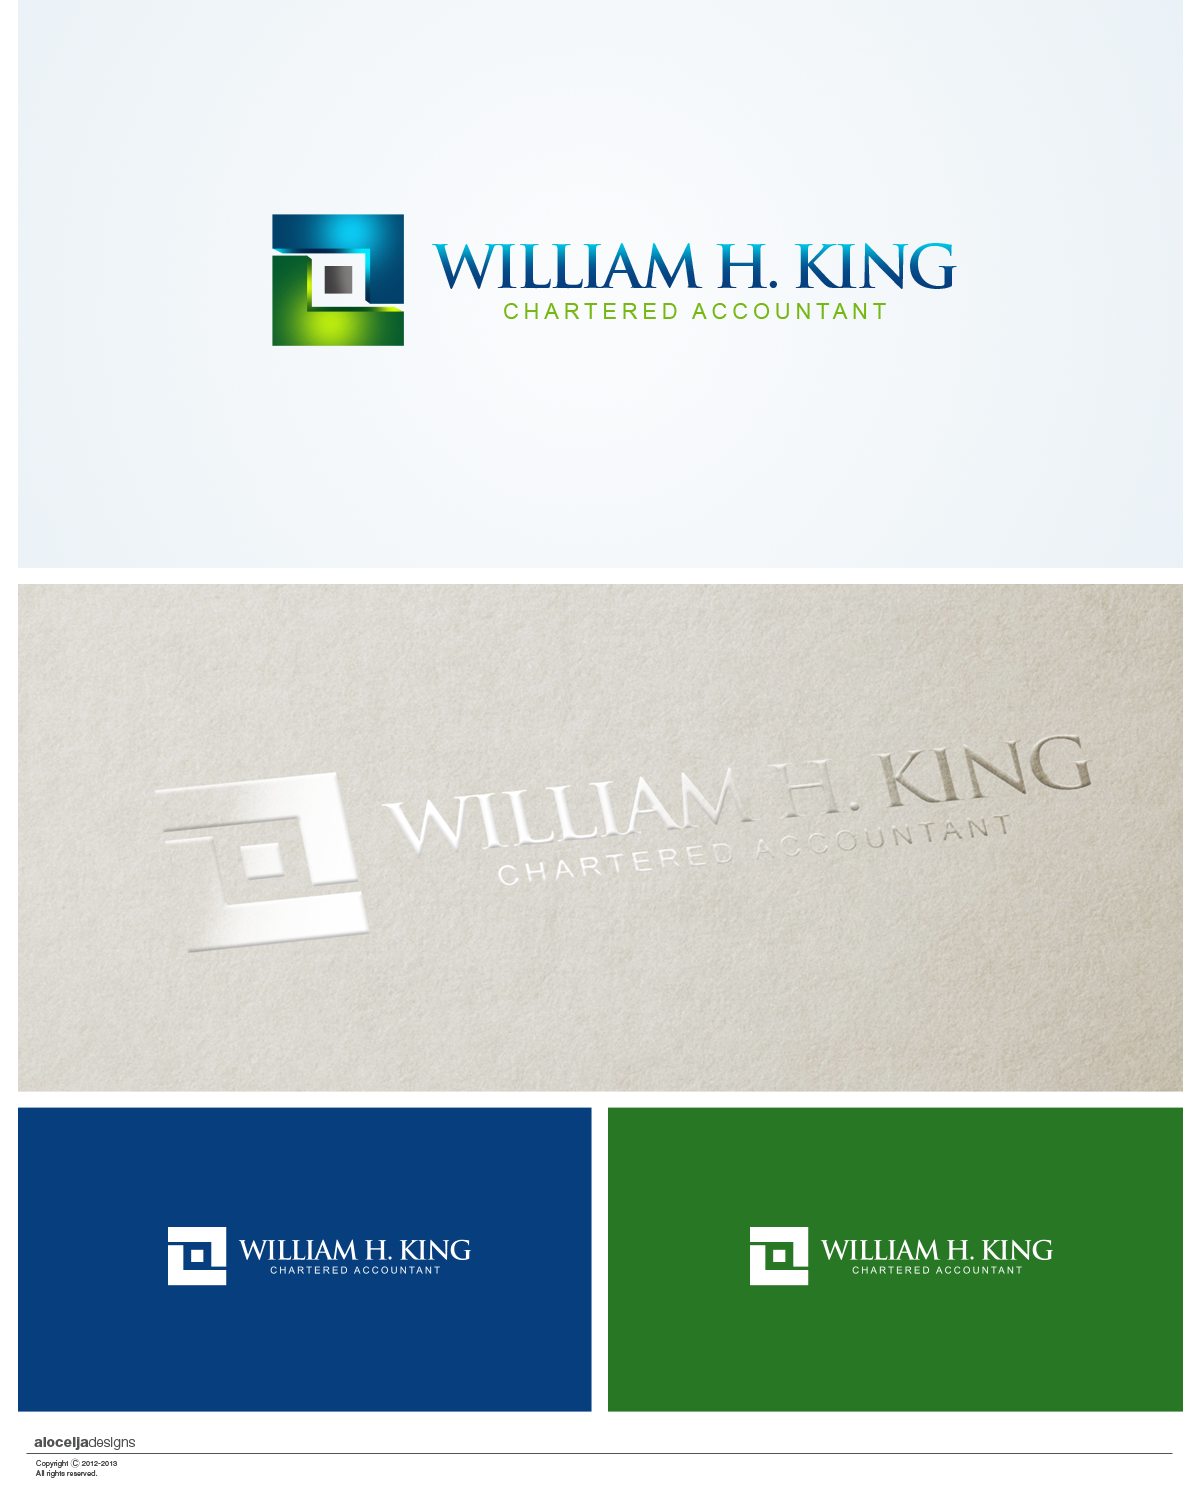 Logo Design by alocelja - Entry No. 182 in the Logo Design Contest New Logo Design for William H. King, Chartered Accountant.